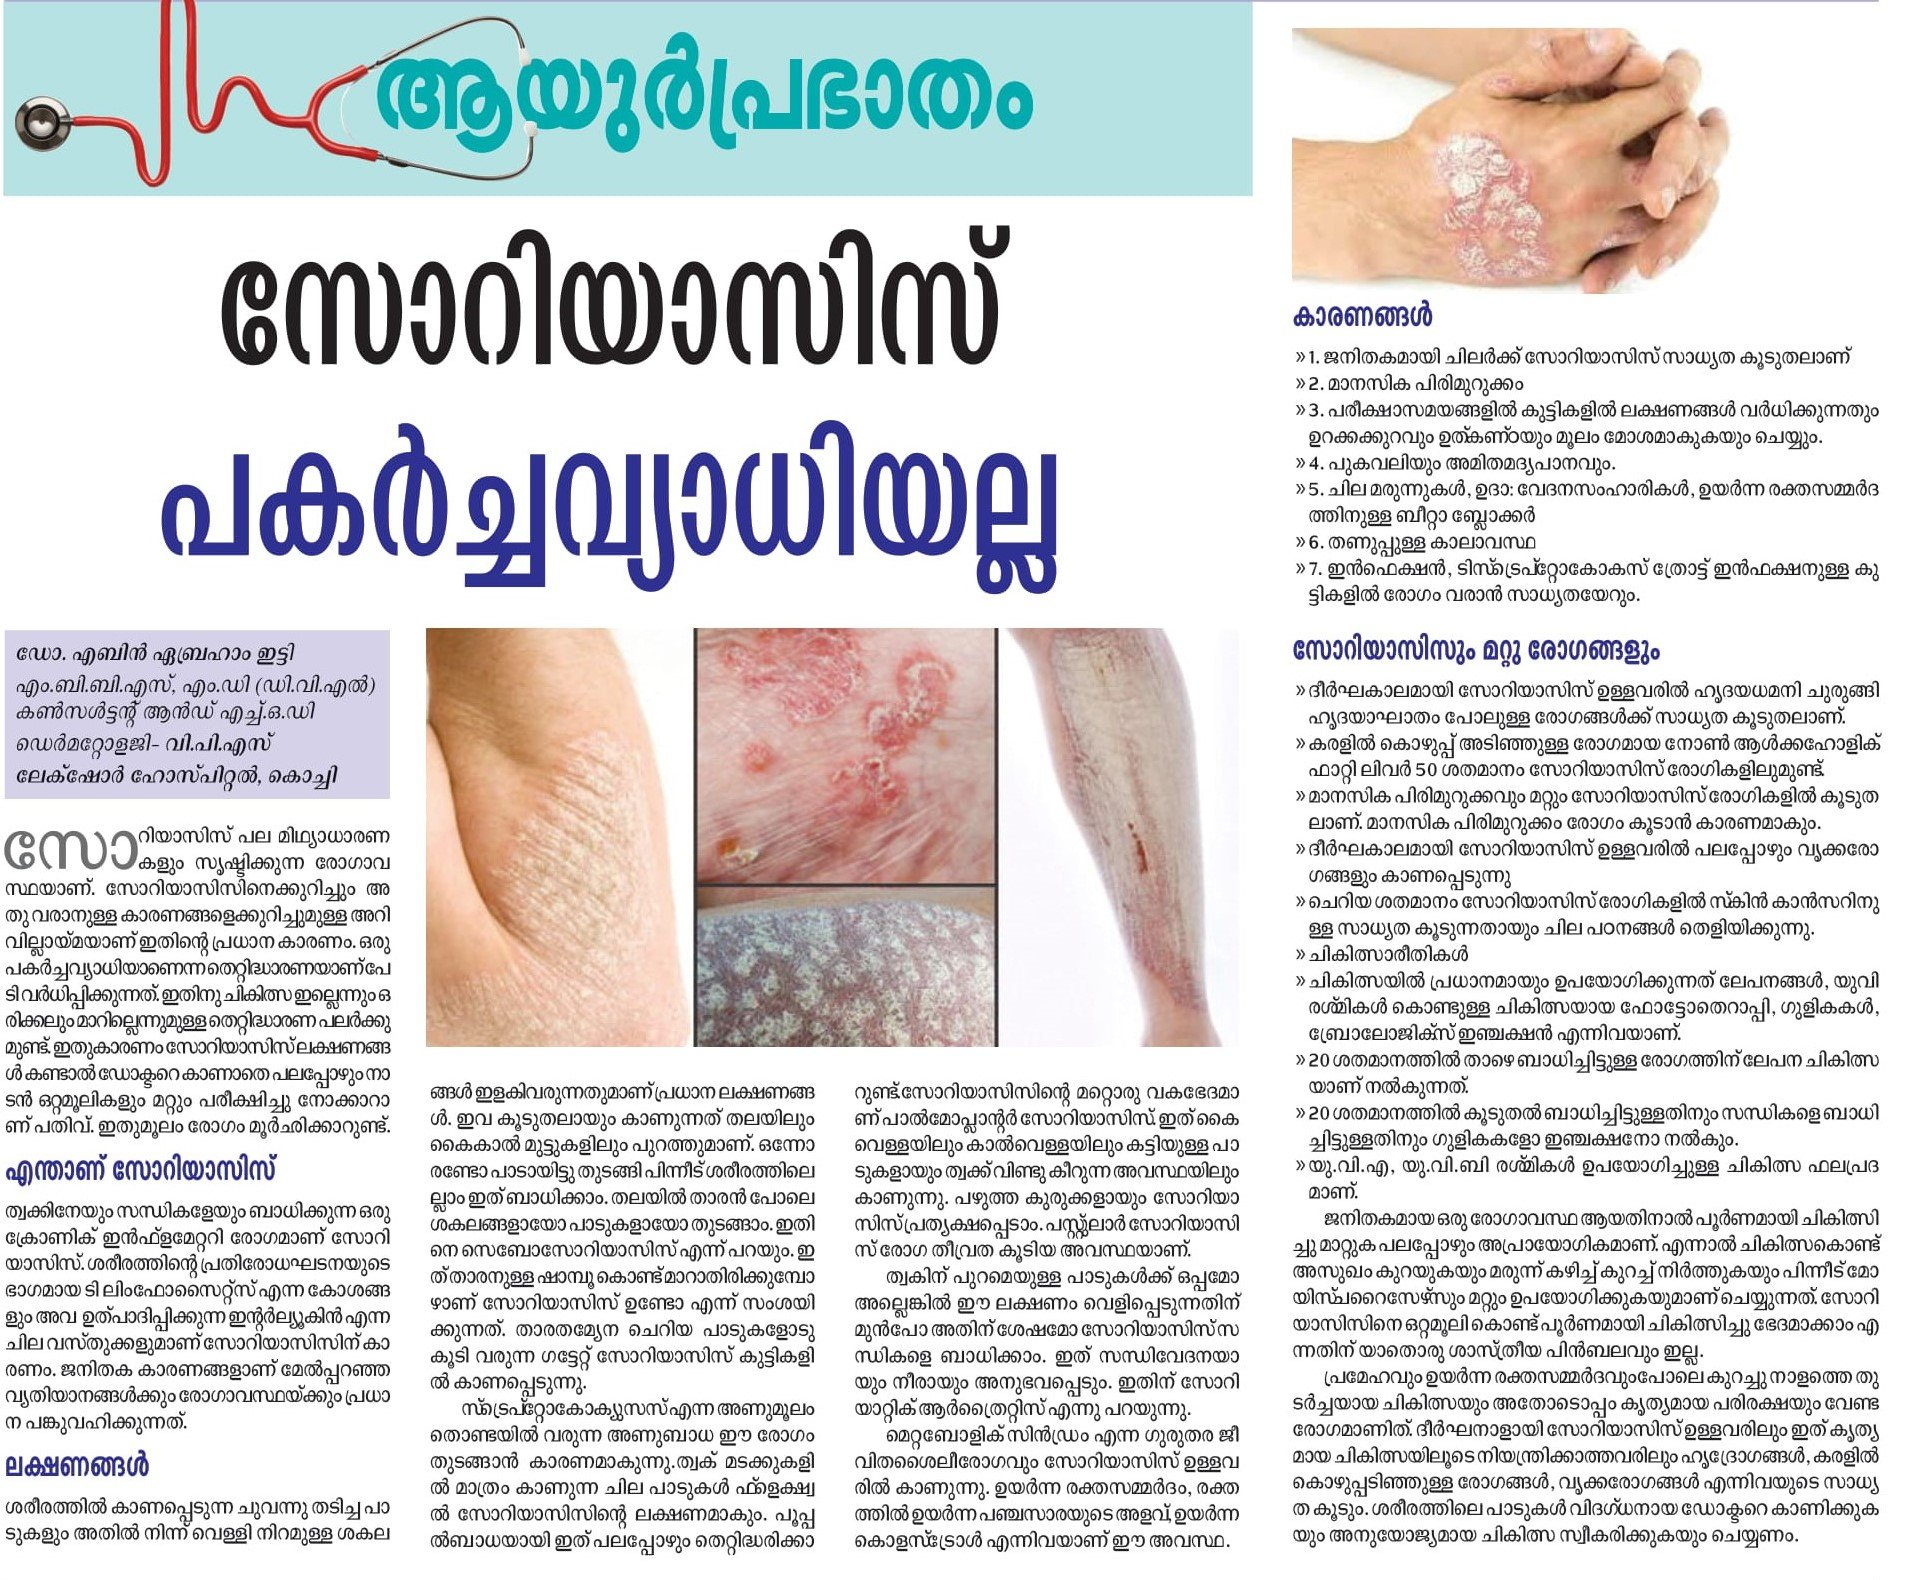 uploads/news/psoriasis-symptomsandtreatment-9CZaNag0WhXezMG.jpg